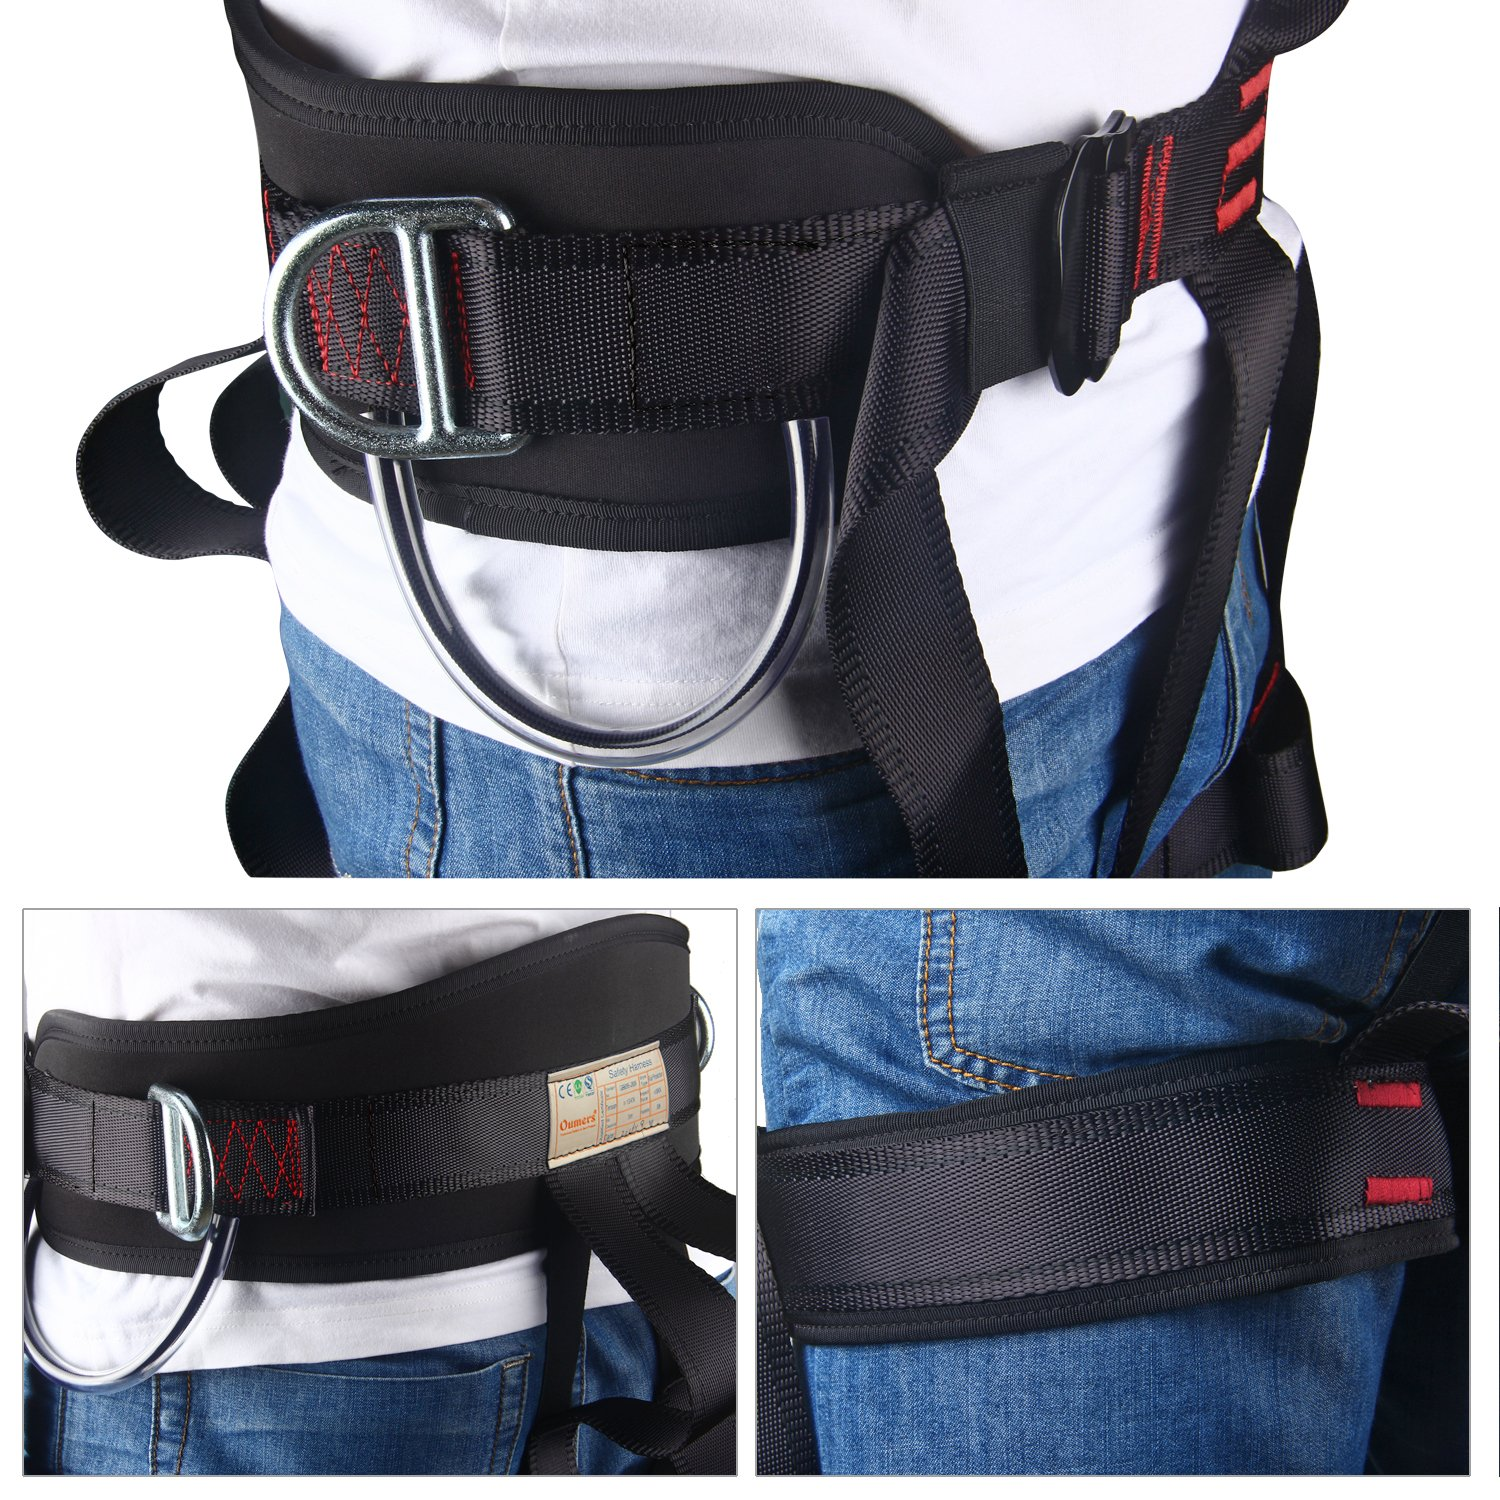 Thicken Wider Climbing Harness Oumers Protect Waist Version Waistbelt Wider Safe Seat Belts For Mountaineering Fire Rescue Higher Level Caving Rock Climbing Rappelling Equip Women Man Child Half Body